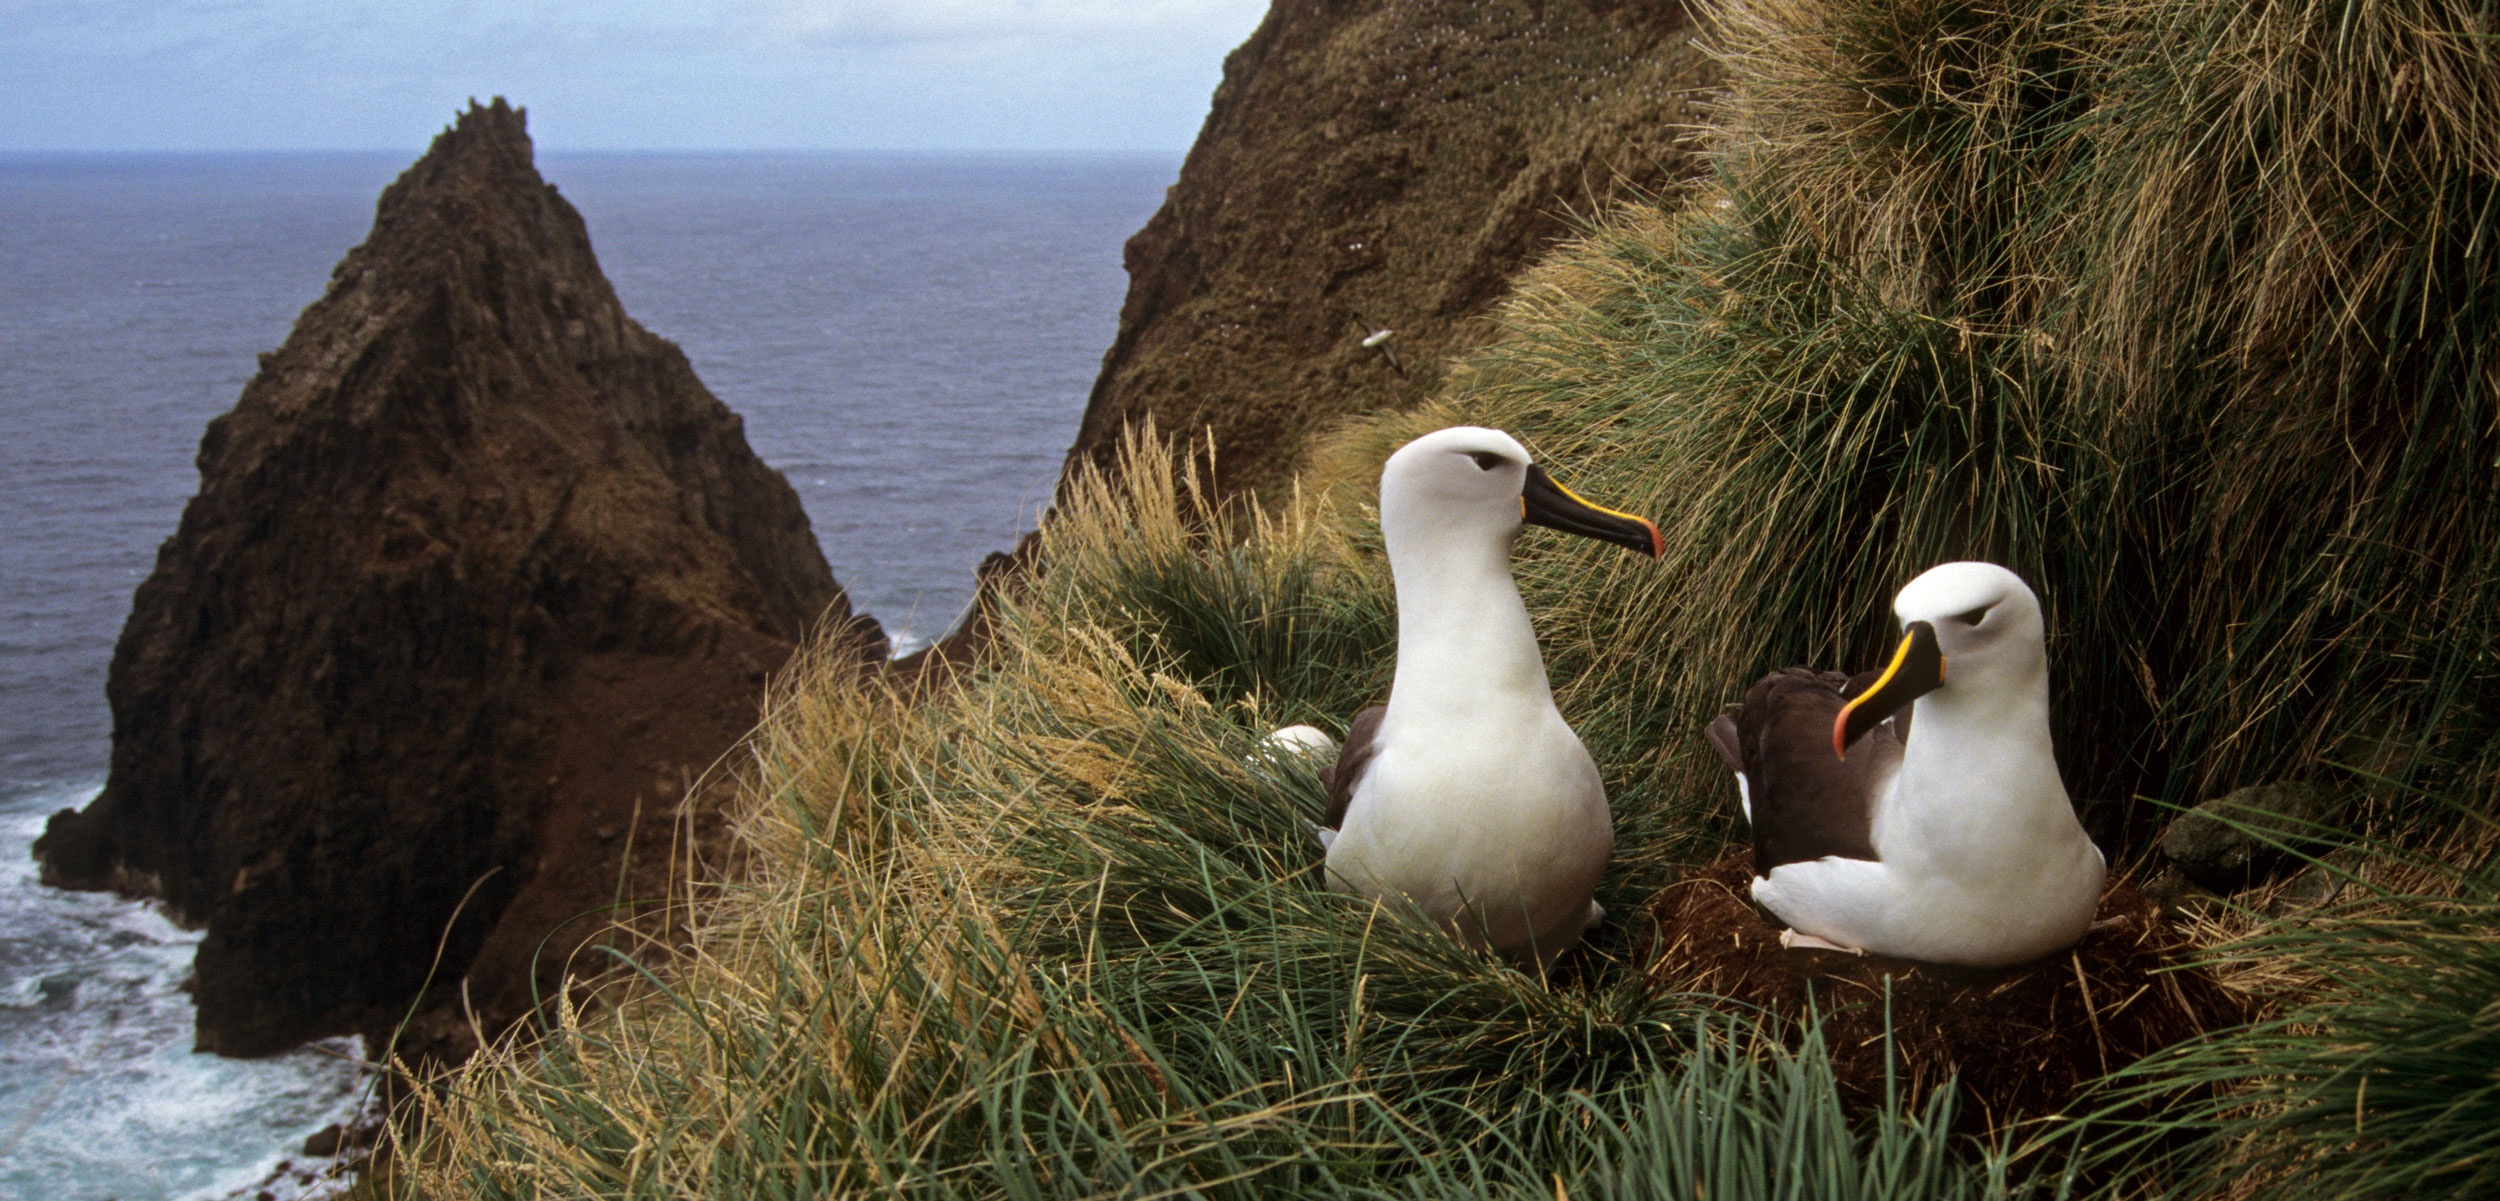 Atlantic yellow-nosed albatross (Diomedea, Thalassarche chlororhynchos) pair at nest, Amsterdam Island